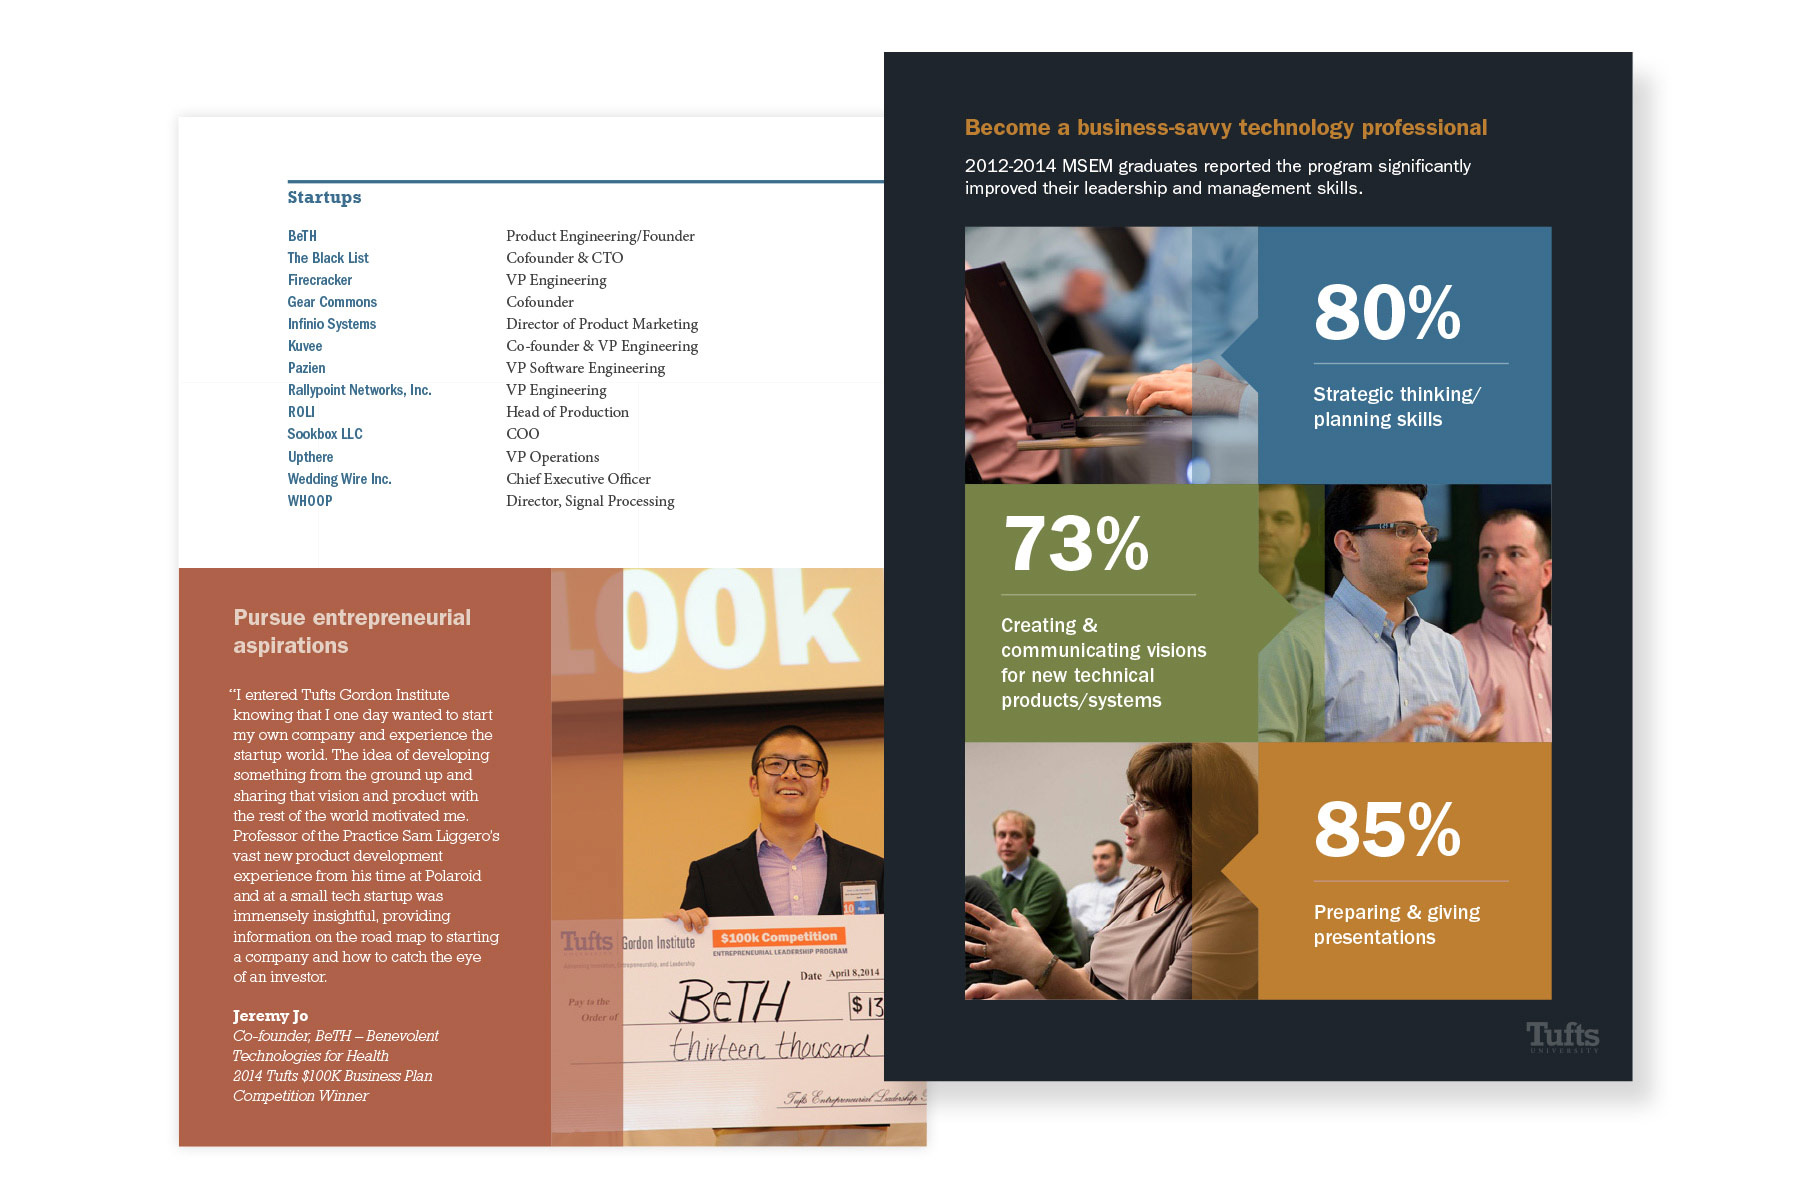 Tufts University Tufts Career Impact brochure interior pages